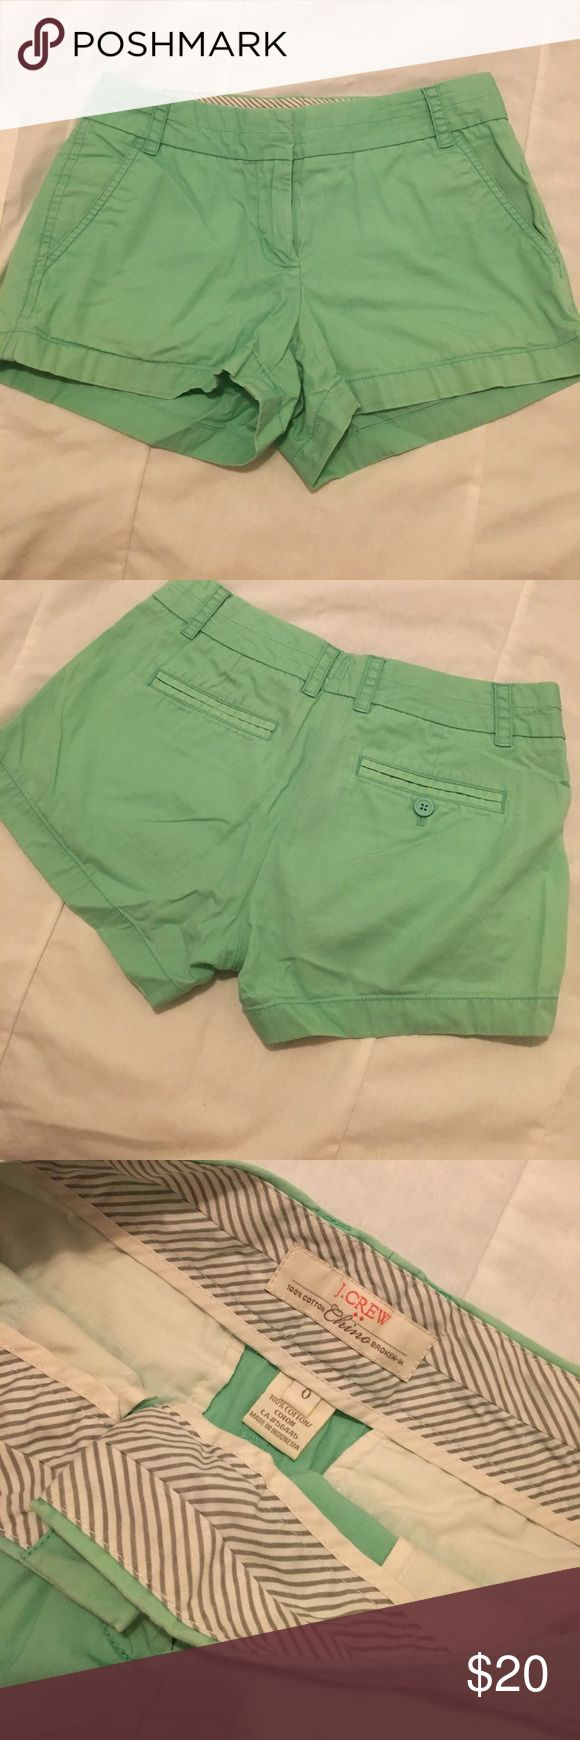 Mint green chino shorts Super cute mint green chino shorts perfect for the beach and summer time! J. Crew Shorts